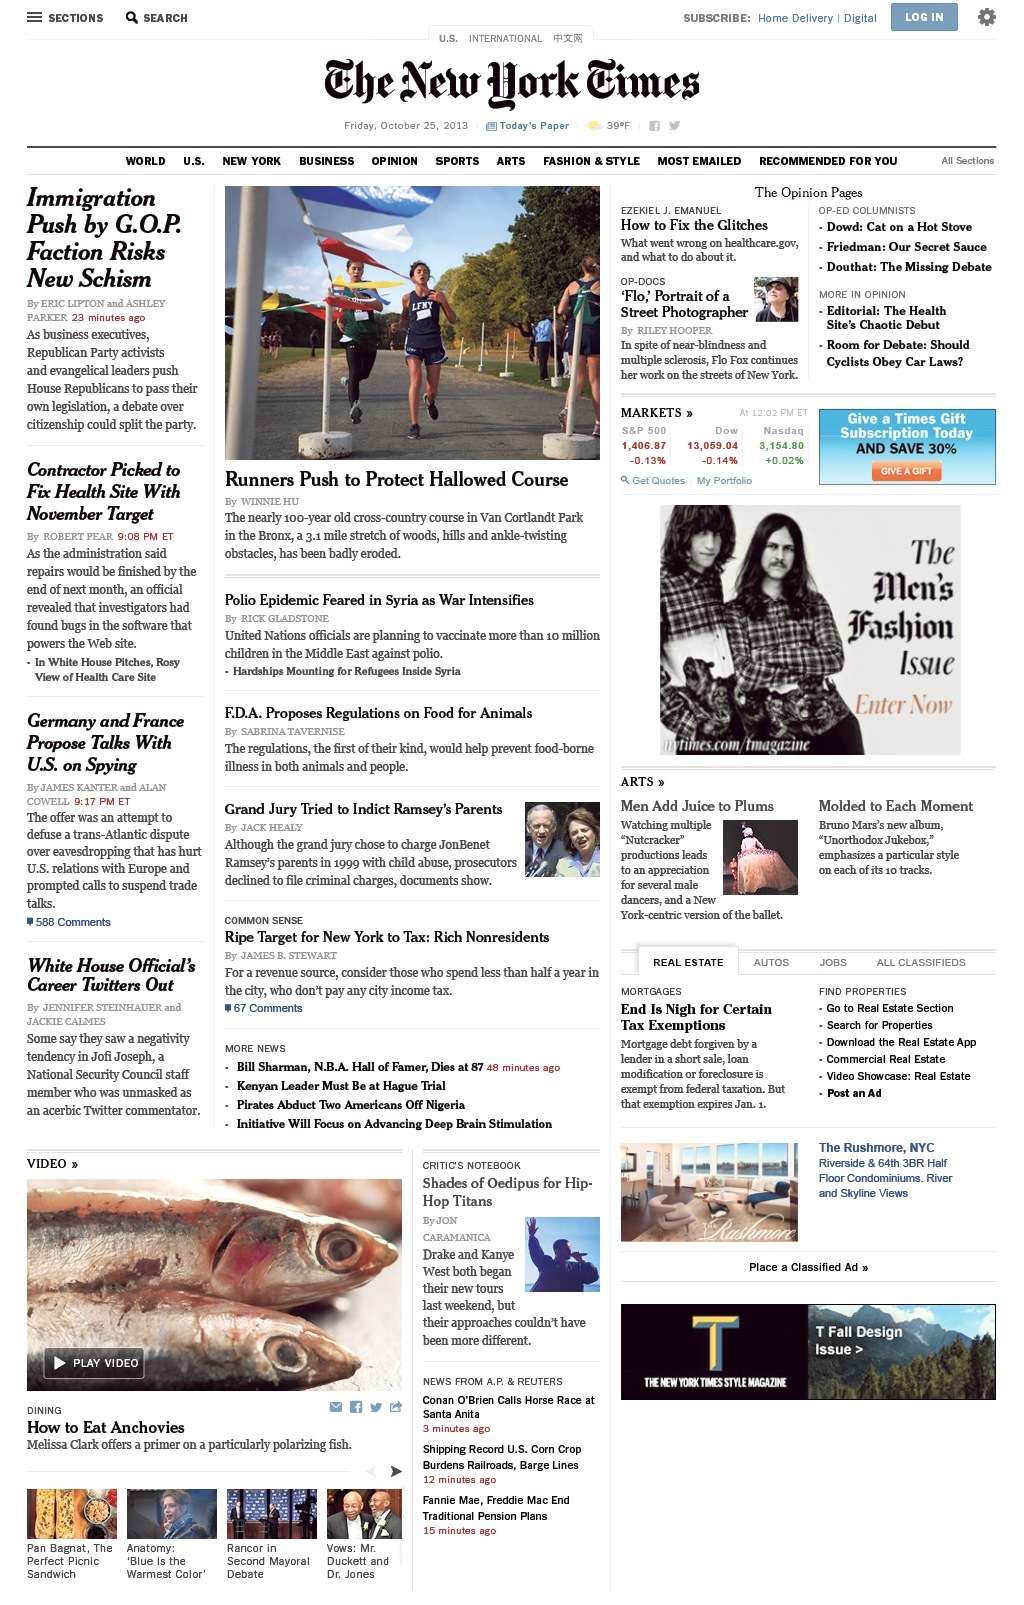 a critique of the times online website Online book review magazine: guides you to the best new and current books, includes reviews, excerpts, reading lists, find a book tool, info for book clubs & more.